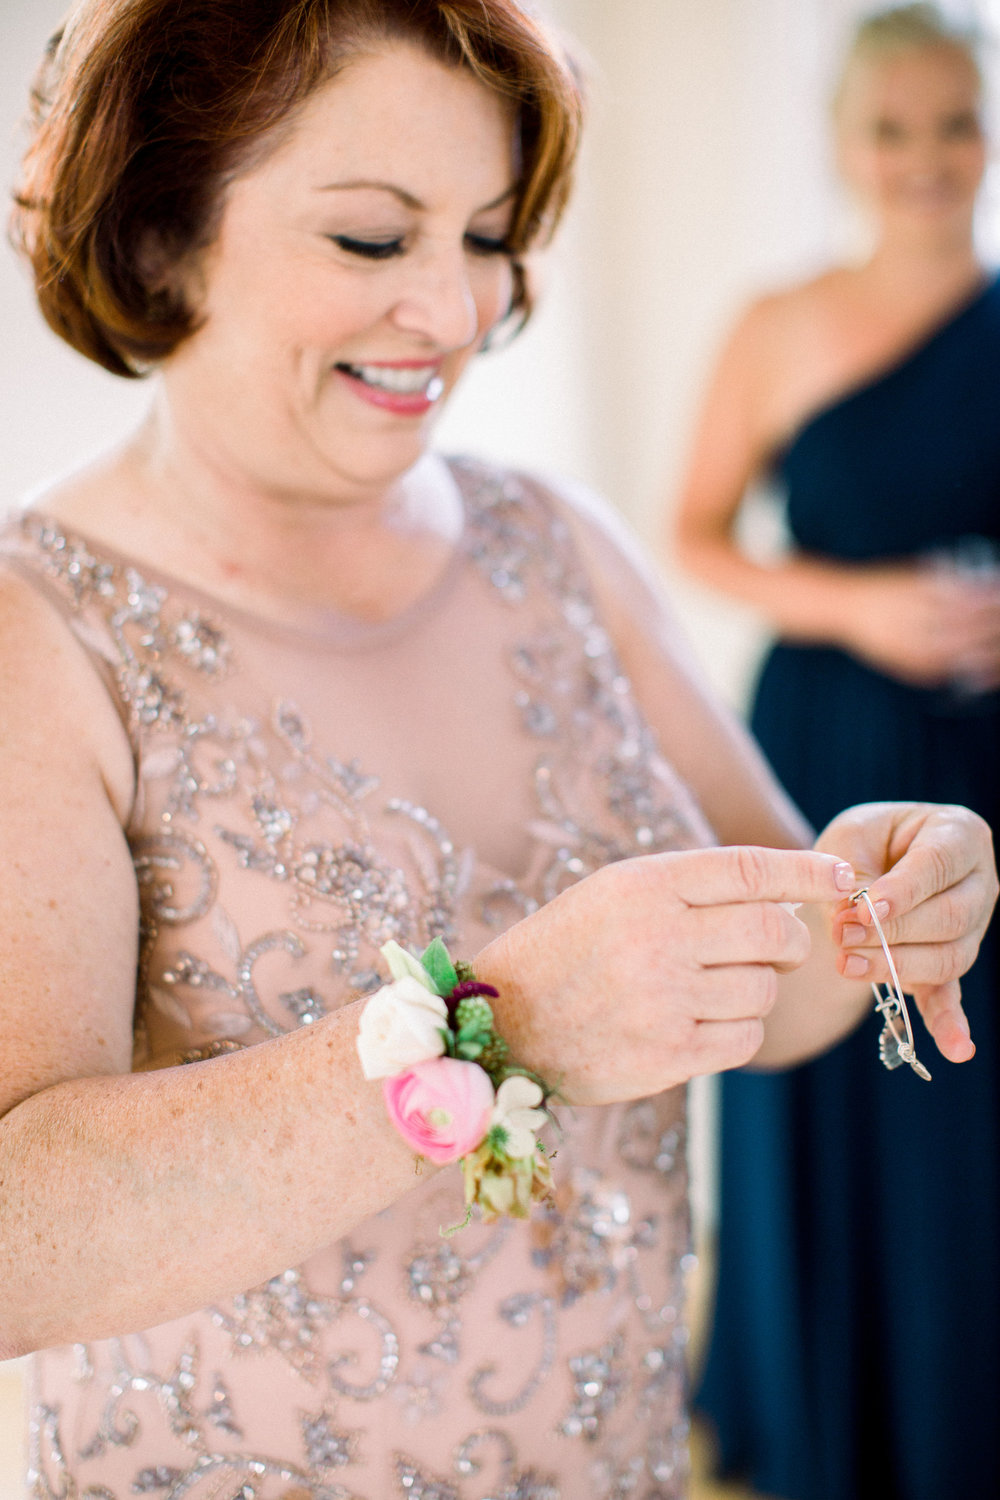 NikkiSanterre_DestinationFilmWeddingPhotographer_PineKnobMansion_Jessica&Scott-370.jpg